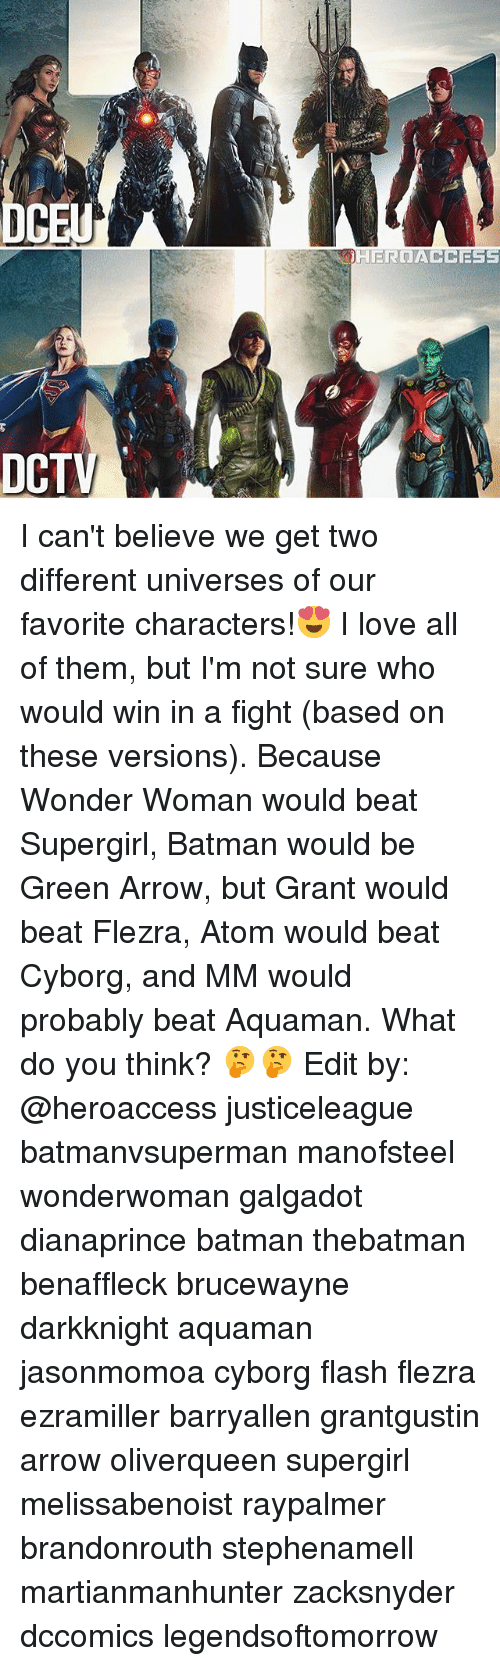 Batman, Love, and Memes: CE  DCTV I can't believe we get two different universes of our favorite characters!😍 I love all of them, but I'm not sure who would win in a fight (based on these versions). Because Wonder Woman would beat Supergirl, Batman would be Green Arrow, but Grant would beat Flezra, Atom would beat Cyborg, and MM would probably beat Aquaman. What do you think? 🤔🤔 Edit by: @heroaccess justiceleague batmanvsuperman manofsteel wonderwoman galgadot dianaprince batman thebatman benaffleck brucewayne darkknight aquaman jasonmomoa cyborg flash flezra ezramiller barryallen grantgustin arrow oliverqueen supergirl melissabenoist raypalmer brandonrouth stephenamell martianmanhunter zacksnyder dccomics legendsoftomorrow